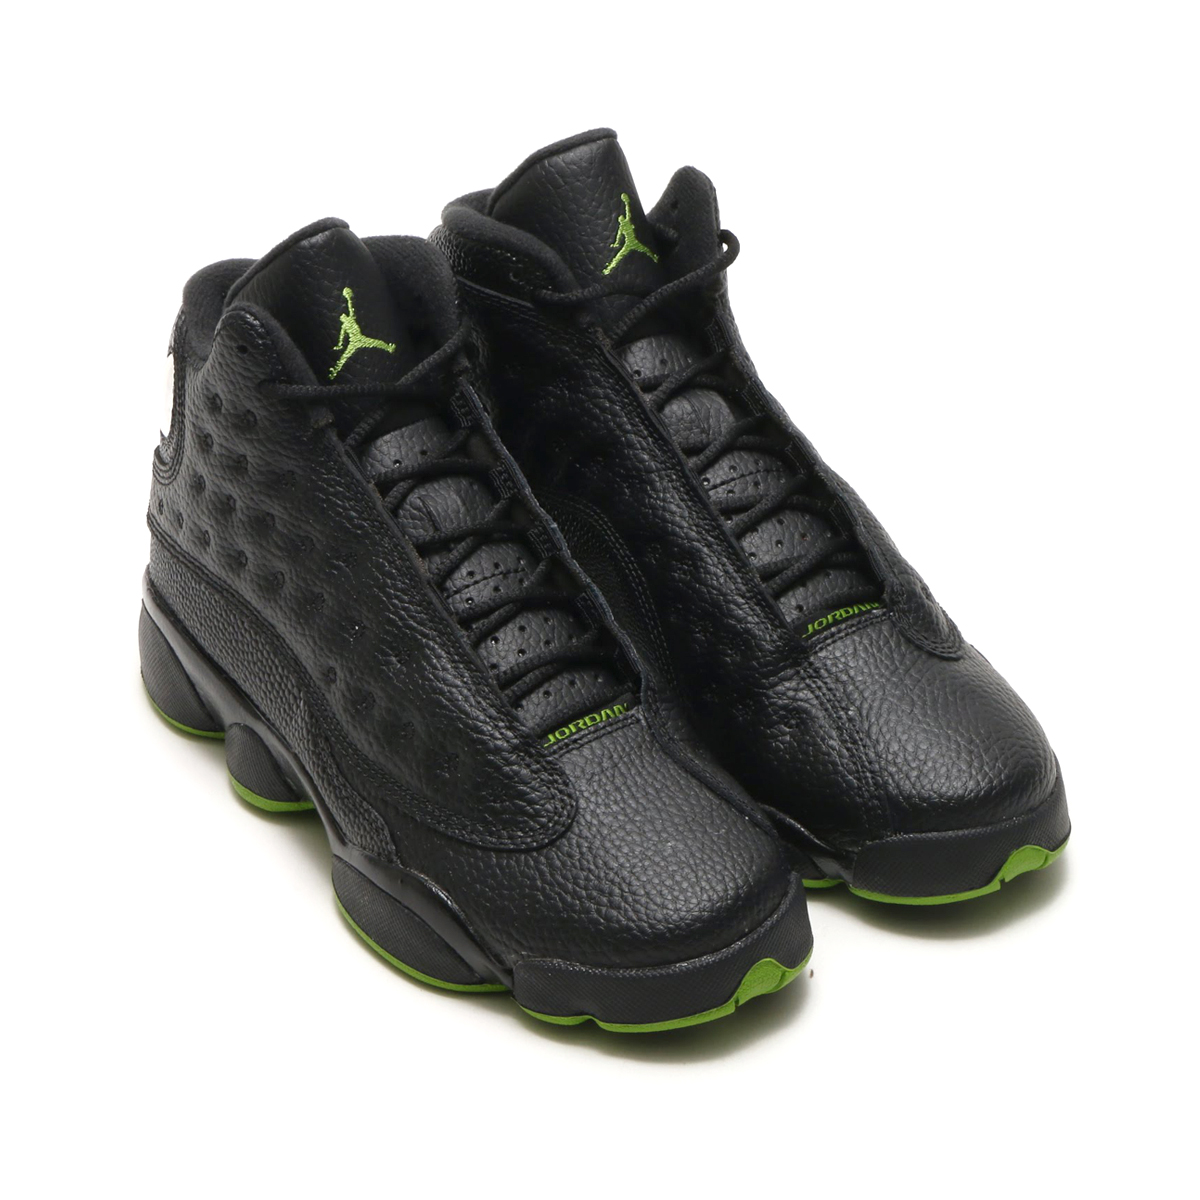 NIKE AIR JORDAN 13 RETRO BG(ナイキ エア ジョーダン 13 レトロ BG)(BLACK/ALTITUDE GREEN)17HO-S